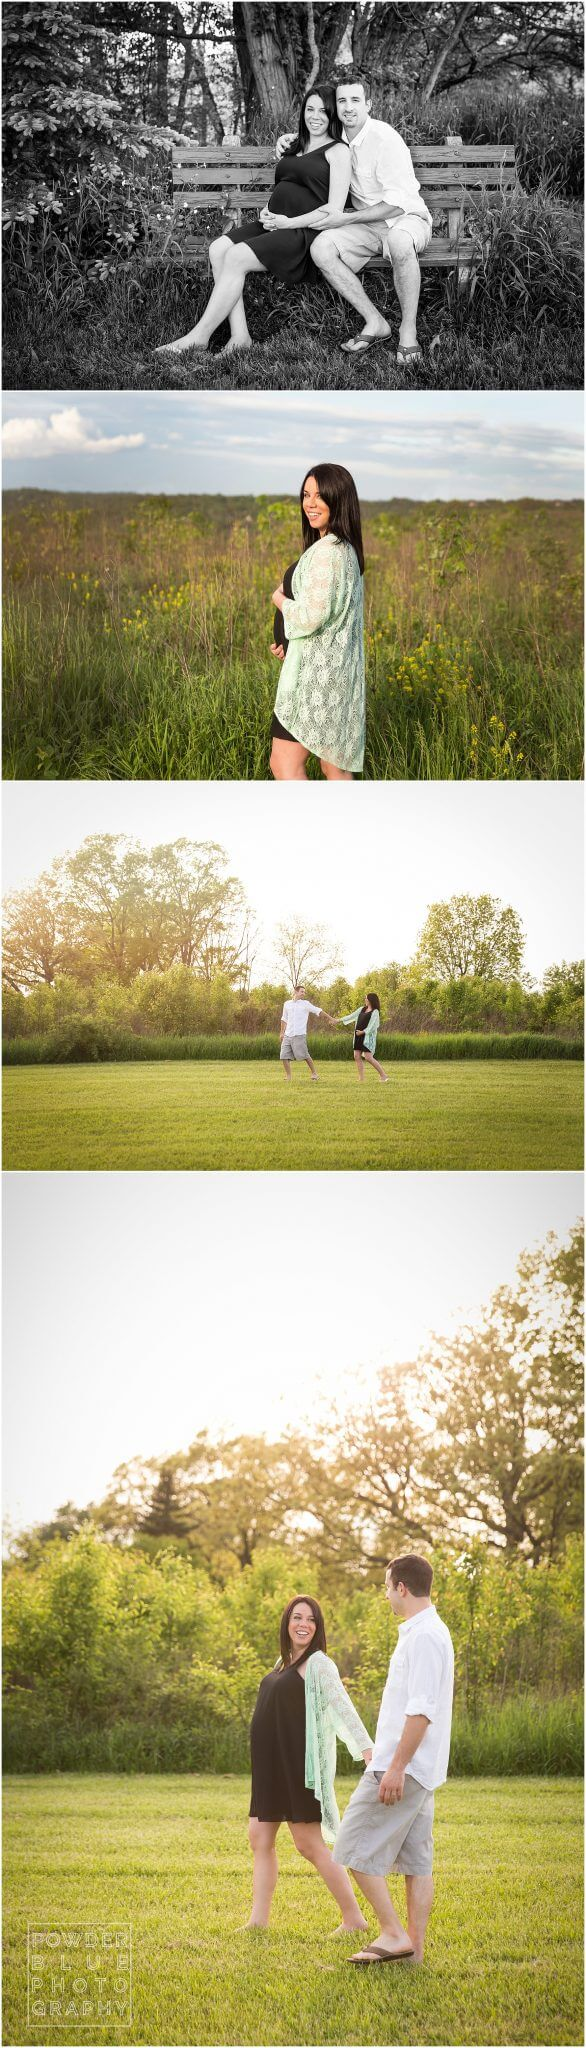 pittsburgh maternity photographer. maternity portrait session in natural setting with tall grasses and hazy sunset backlighting.